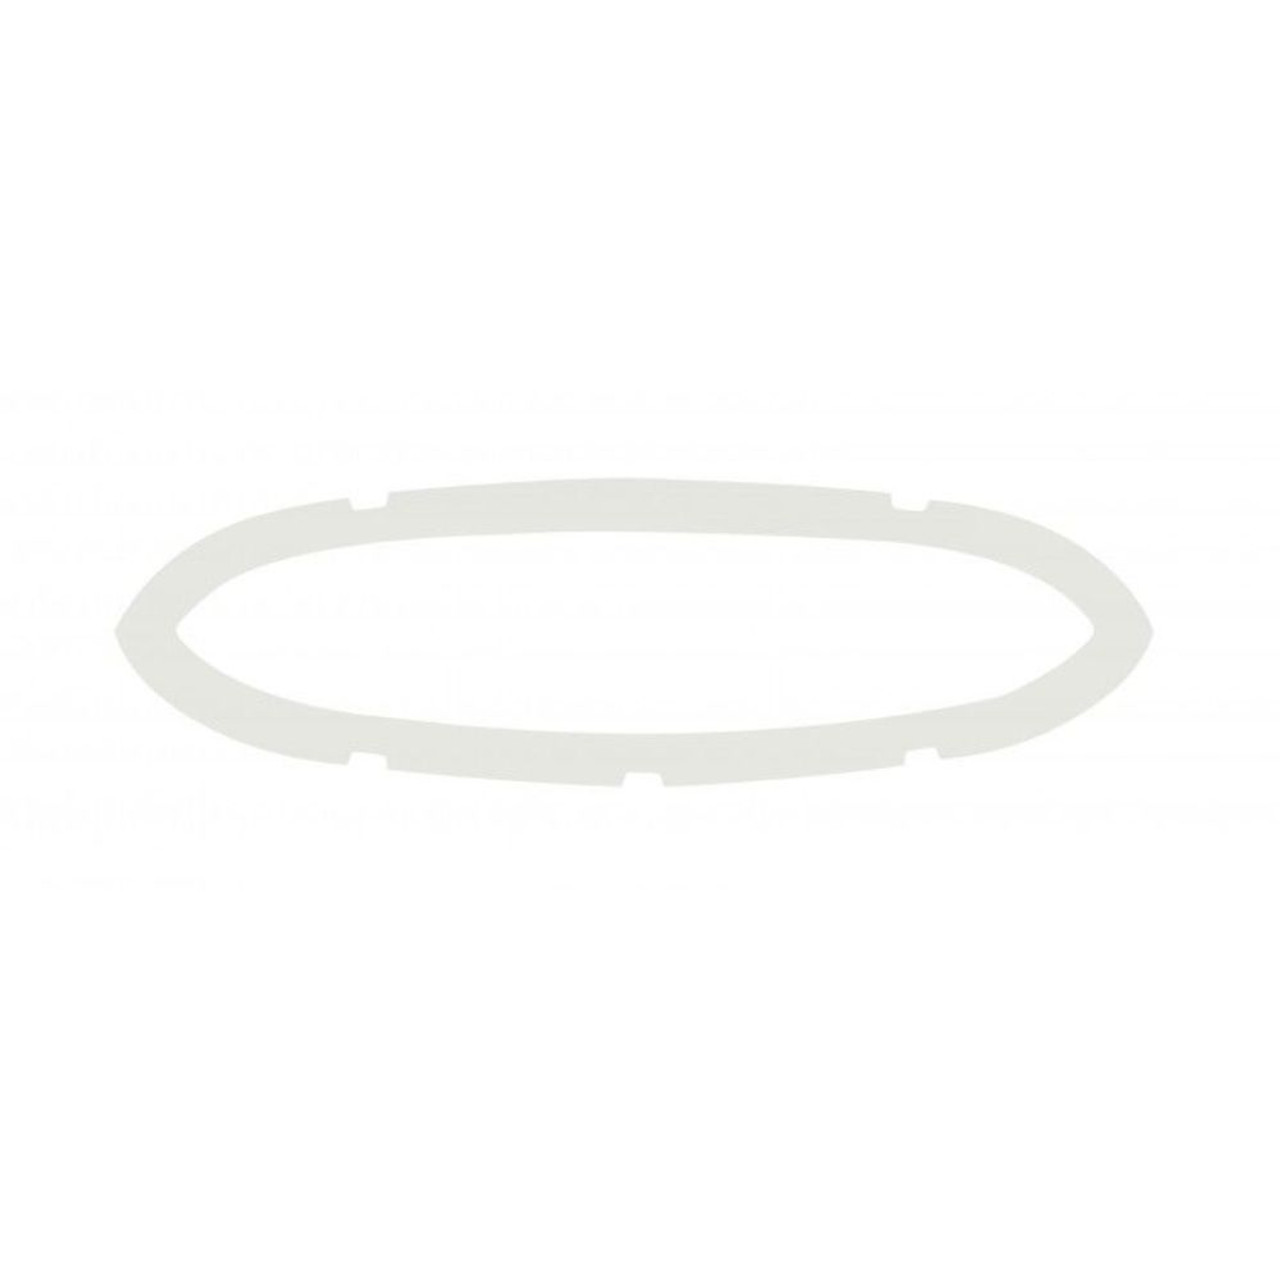 Tail Light Lens Gasket Set, Compatible with Ford 1951